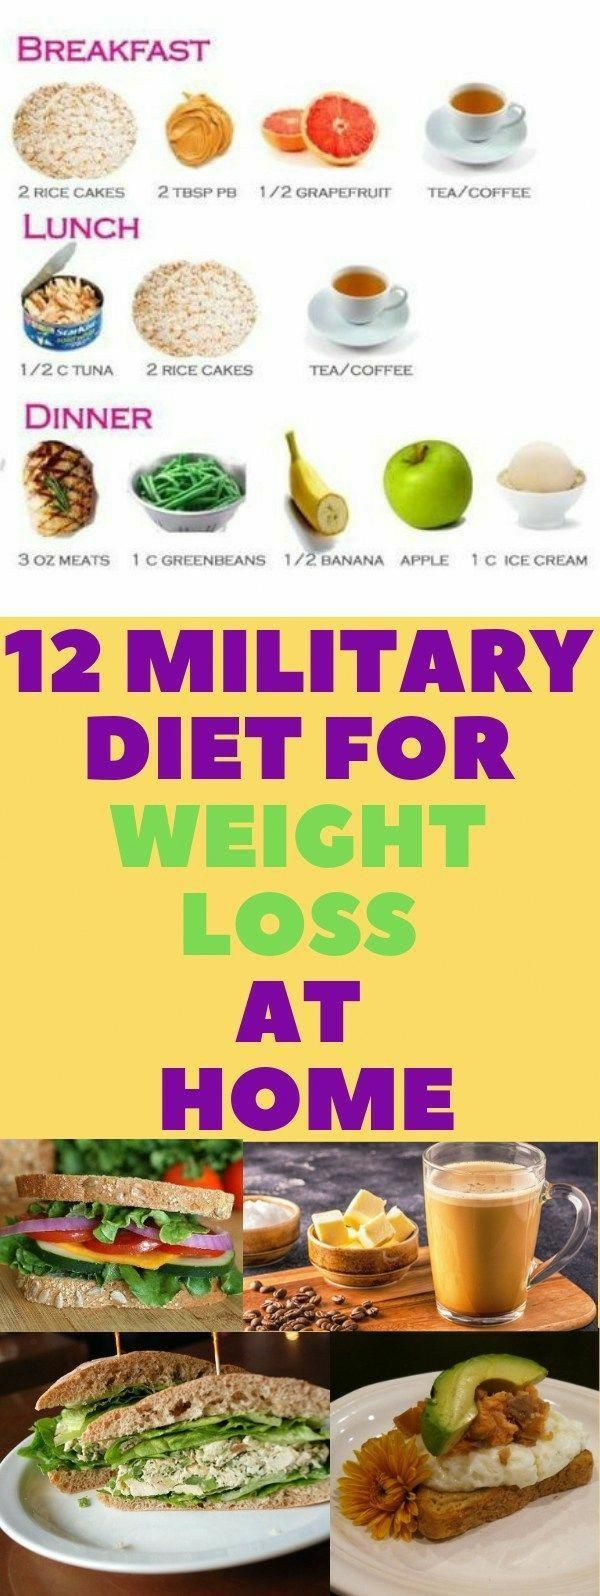 Ways to Lose weight With This Boiled Egg Diet regime Plan #Architecture